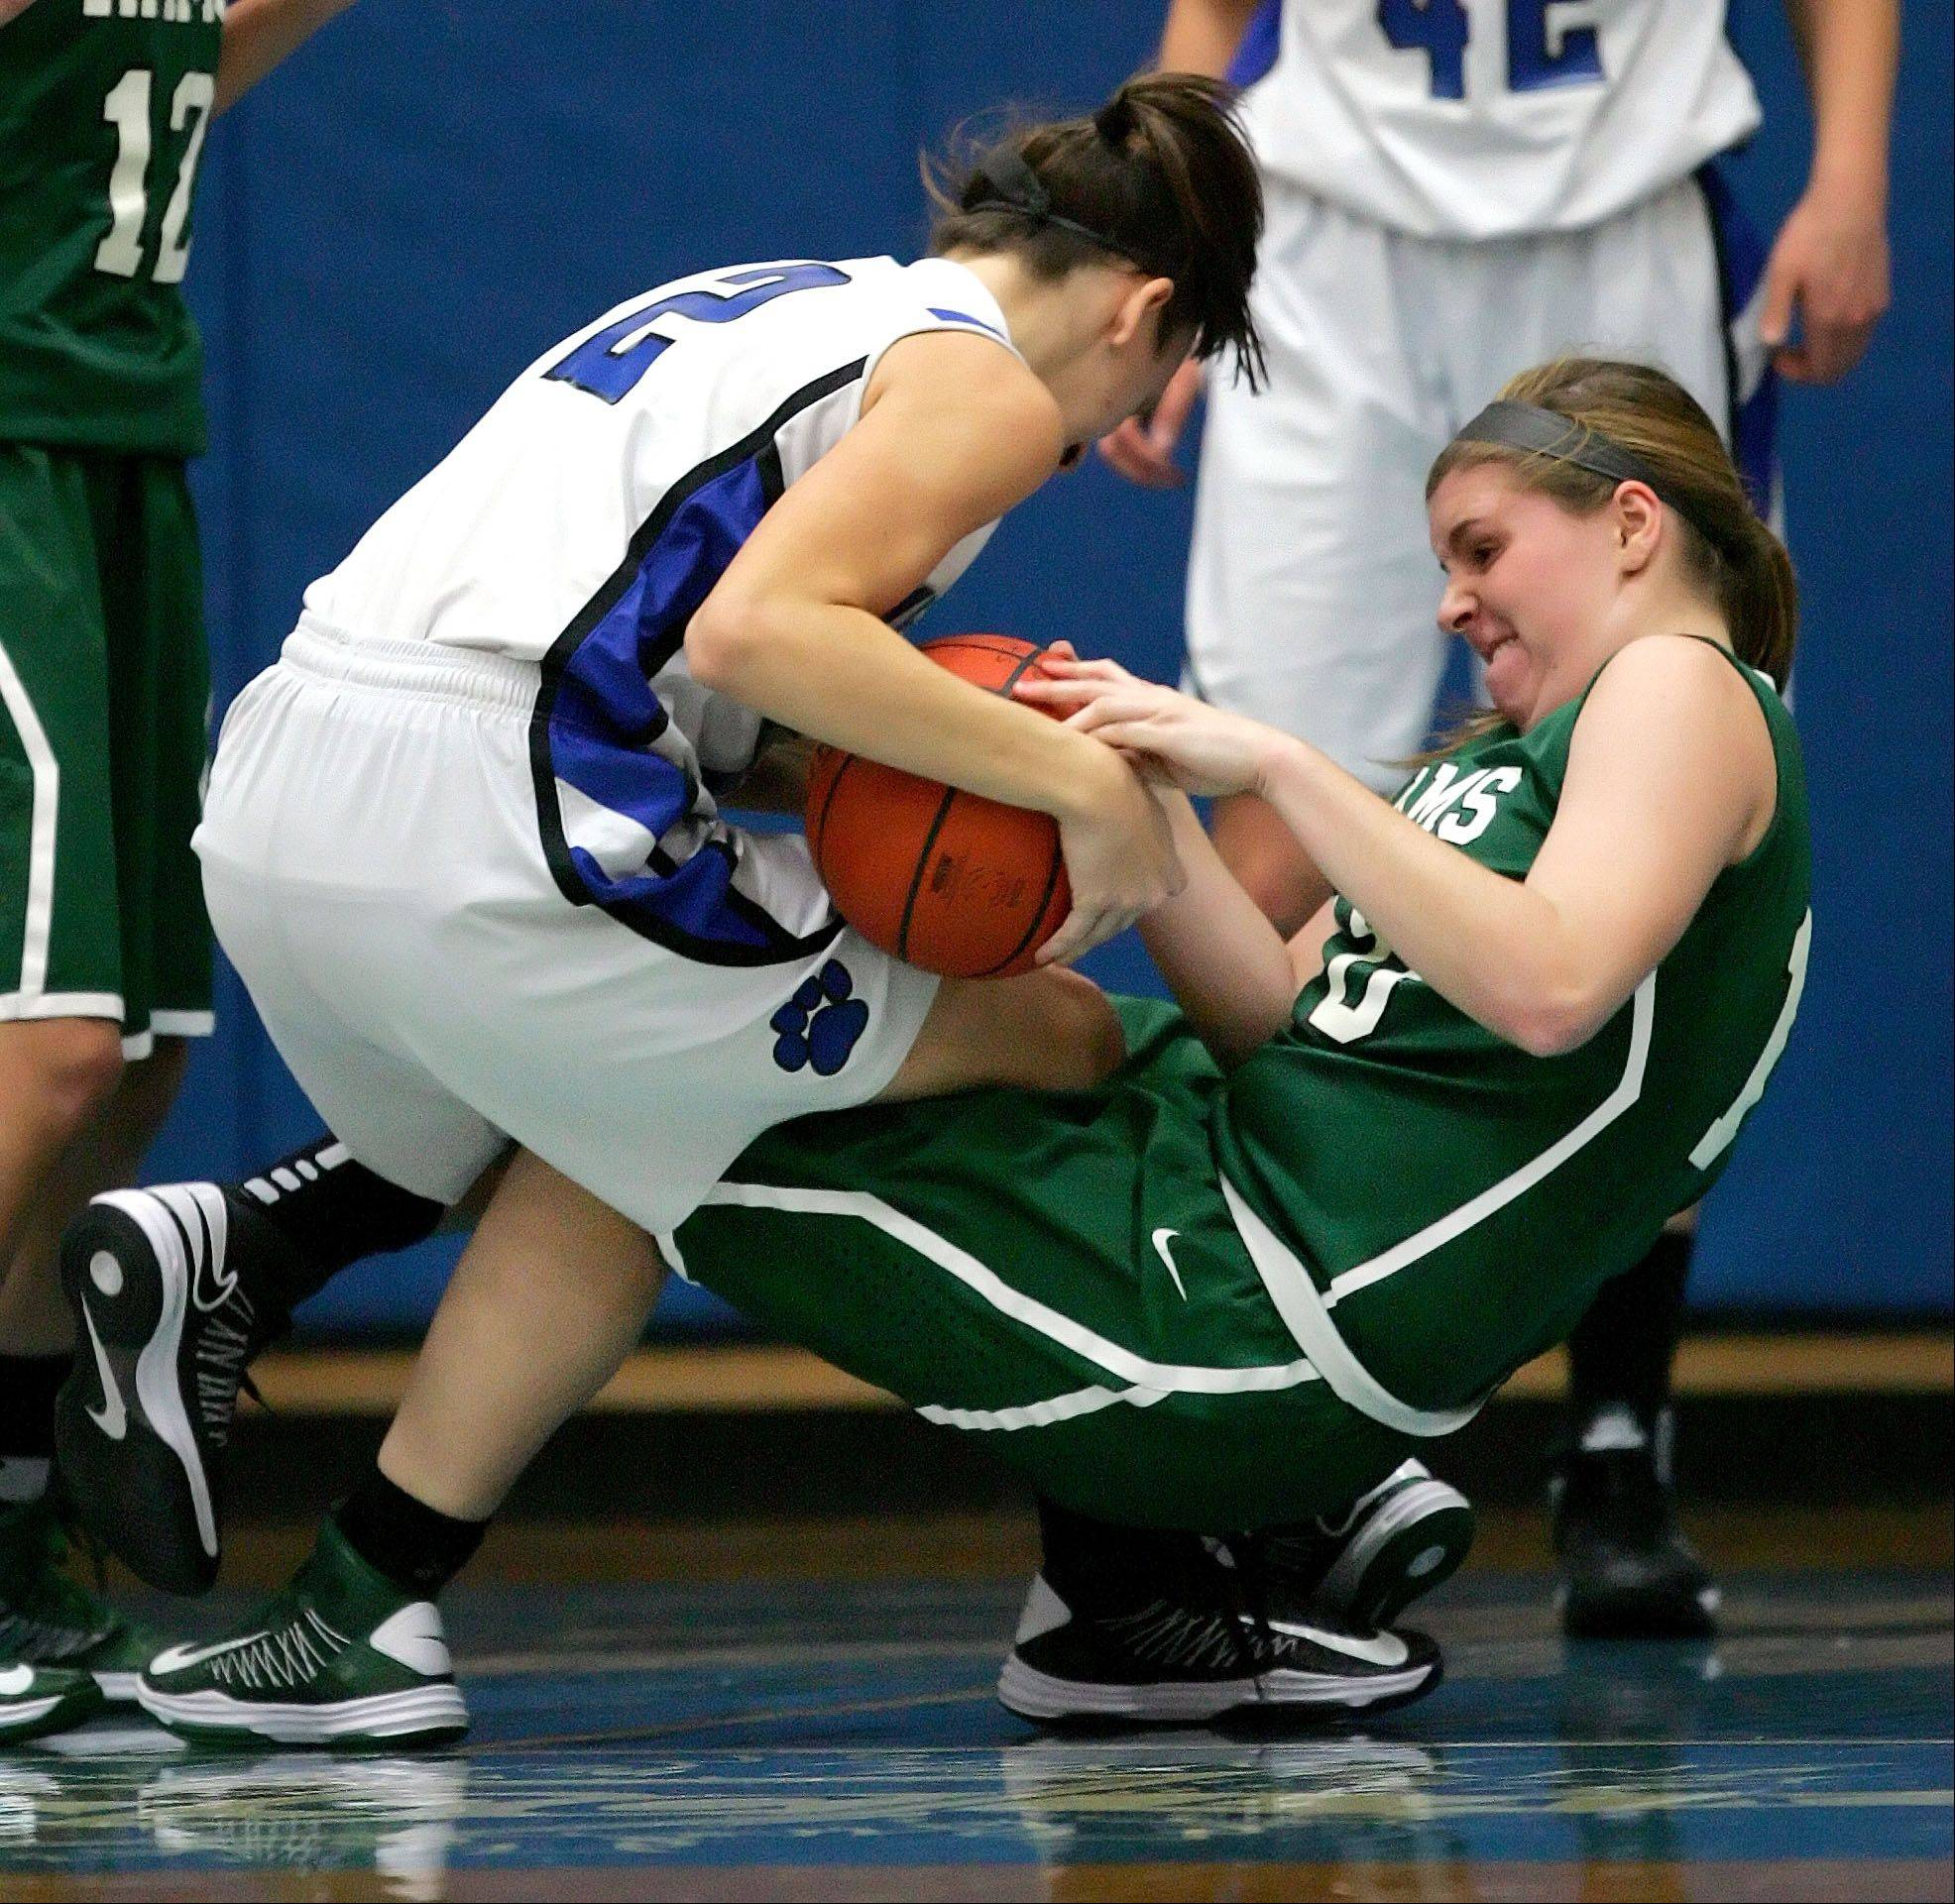 Vernon Hills� Alina Lehocky , left, and Grayslake Central�s Maddy Miller battle for a loose ball .